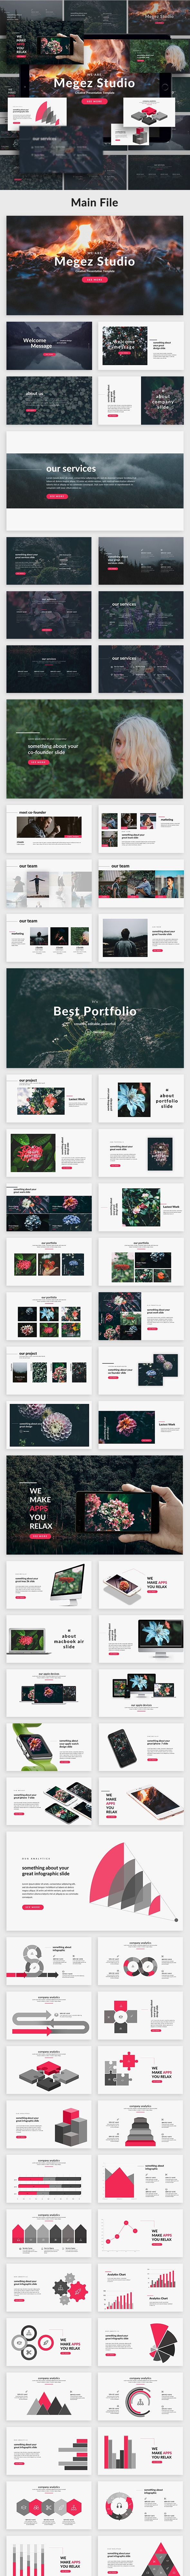 Megez - Creative Google Slide Template - Google Slides Presentation Templates